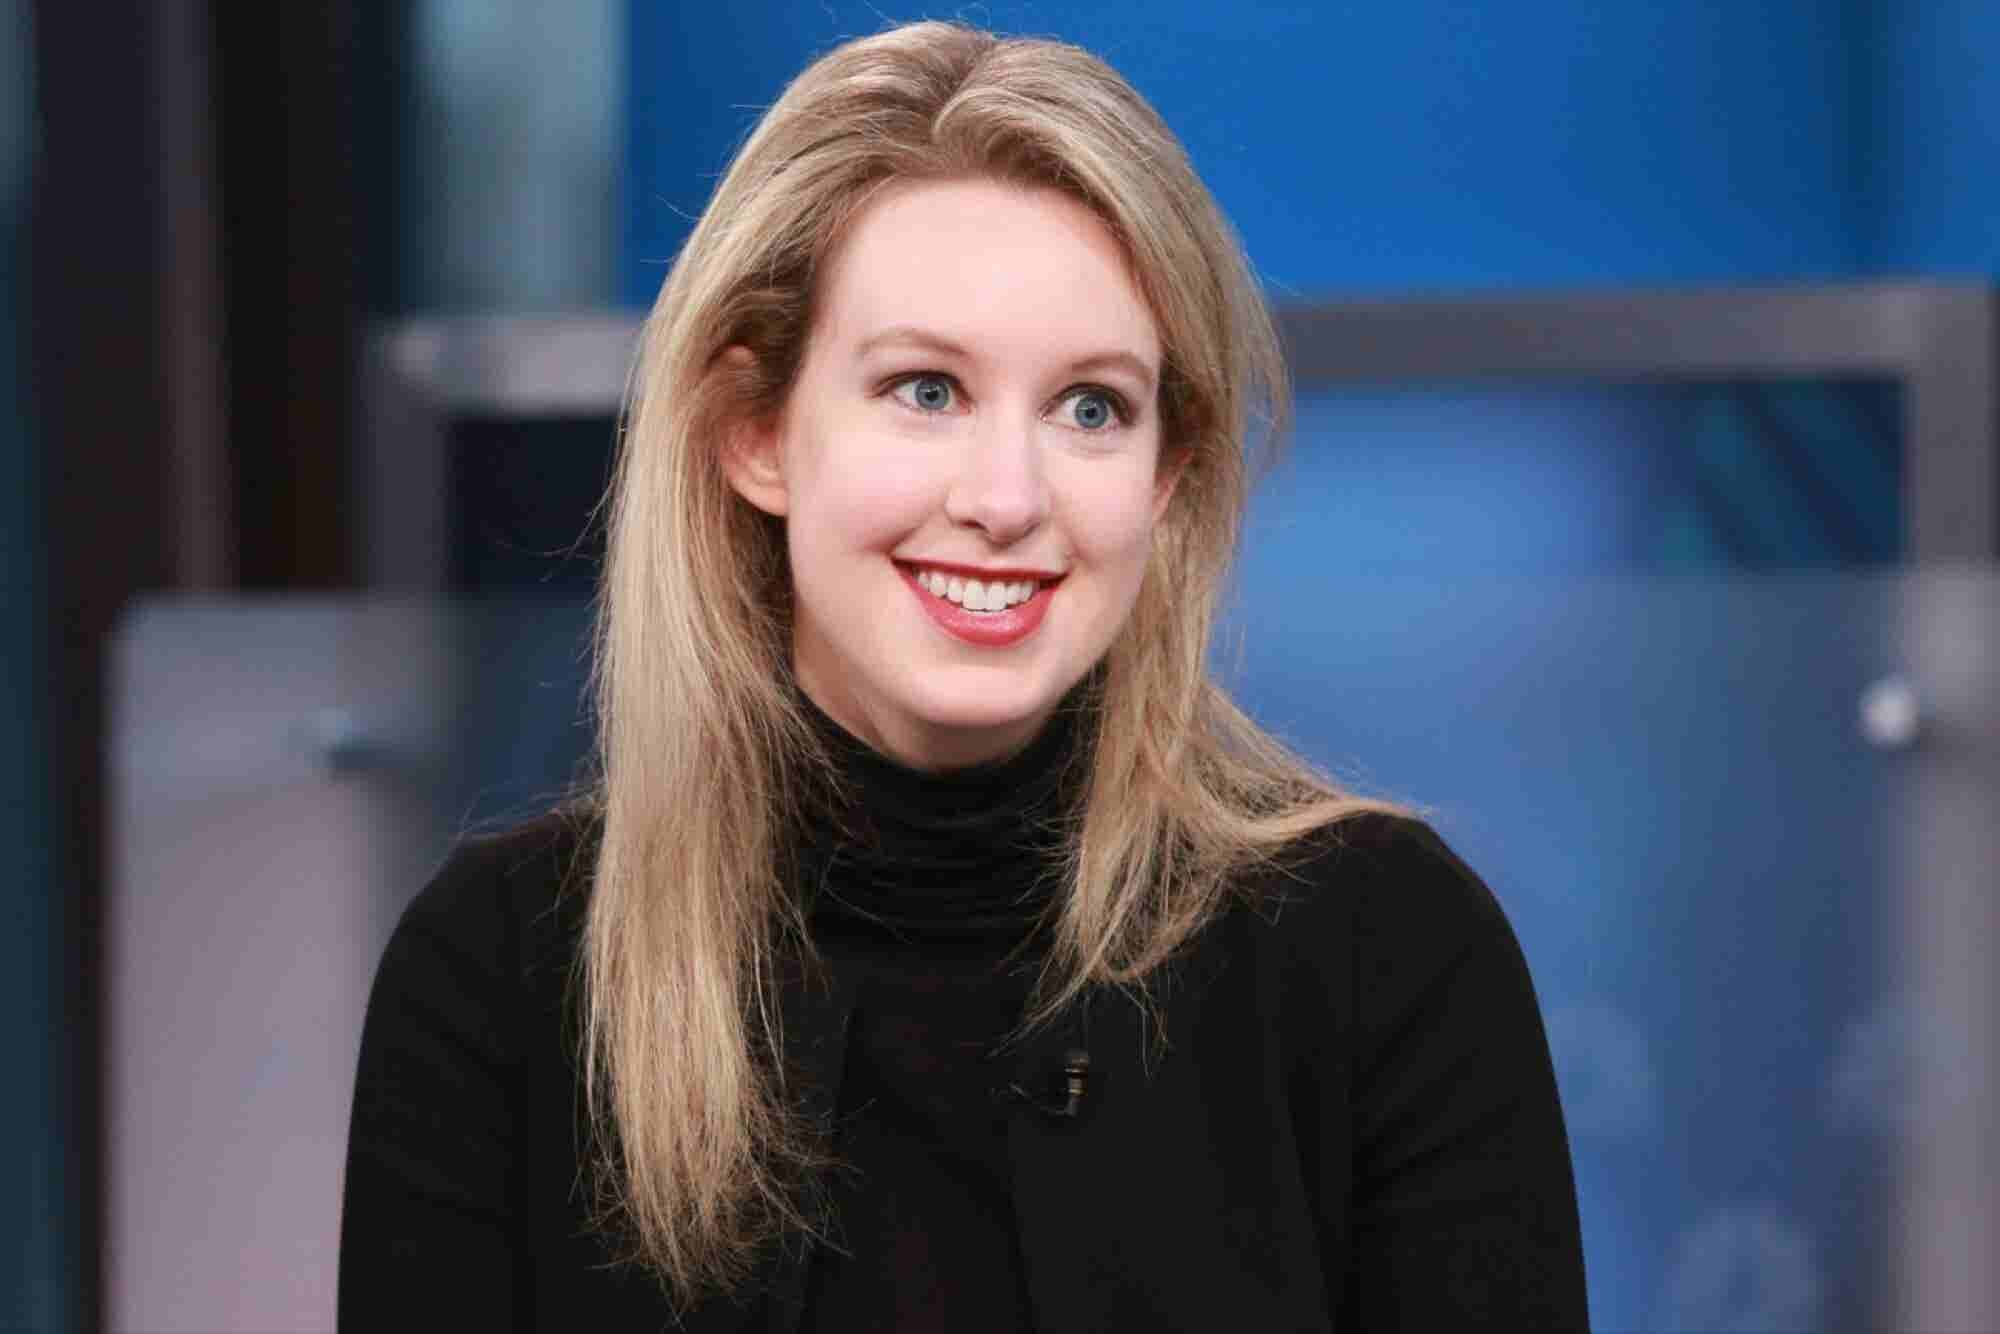 What Entrepreneurs Can Learn From Theranos's Fall From Grace